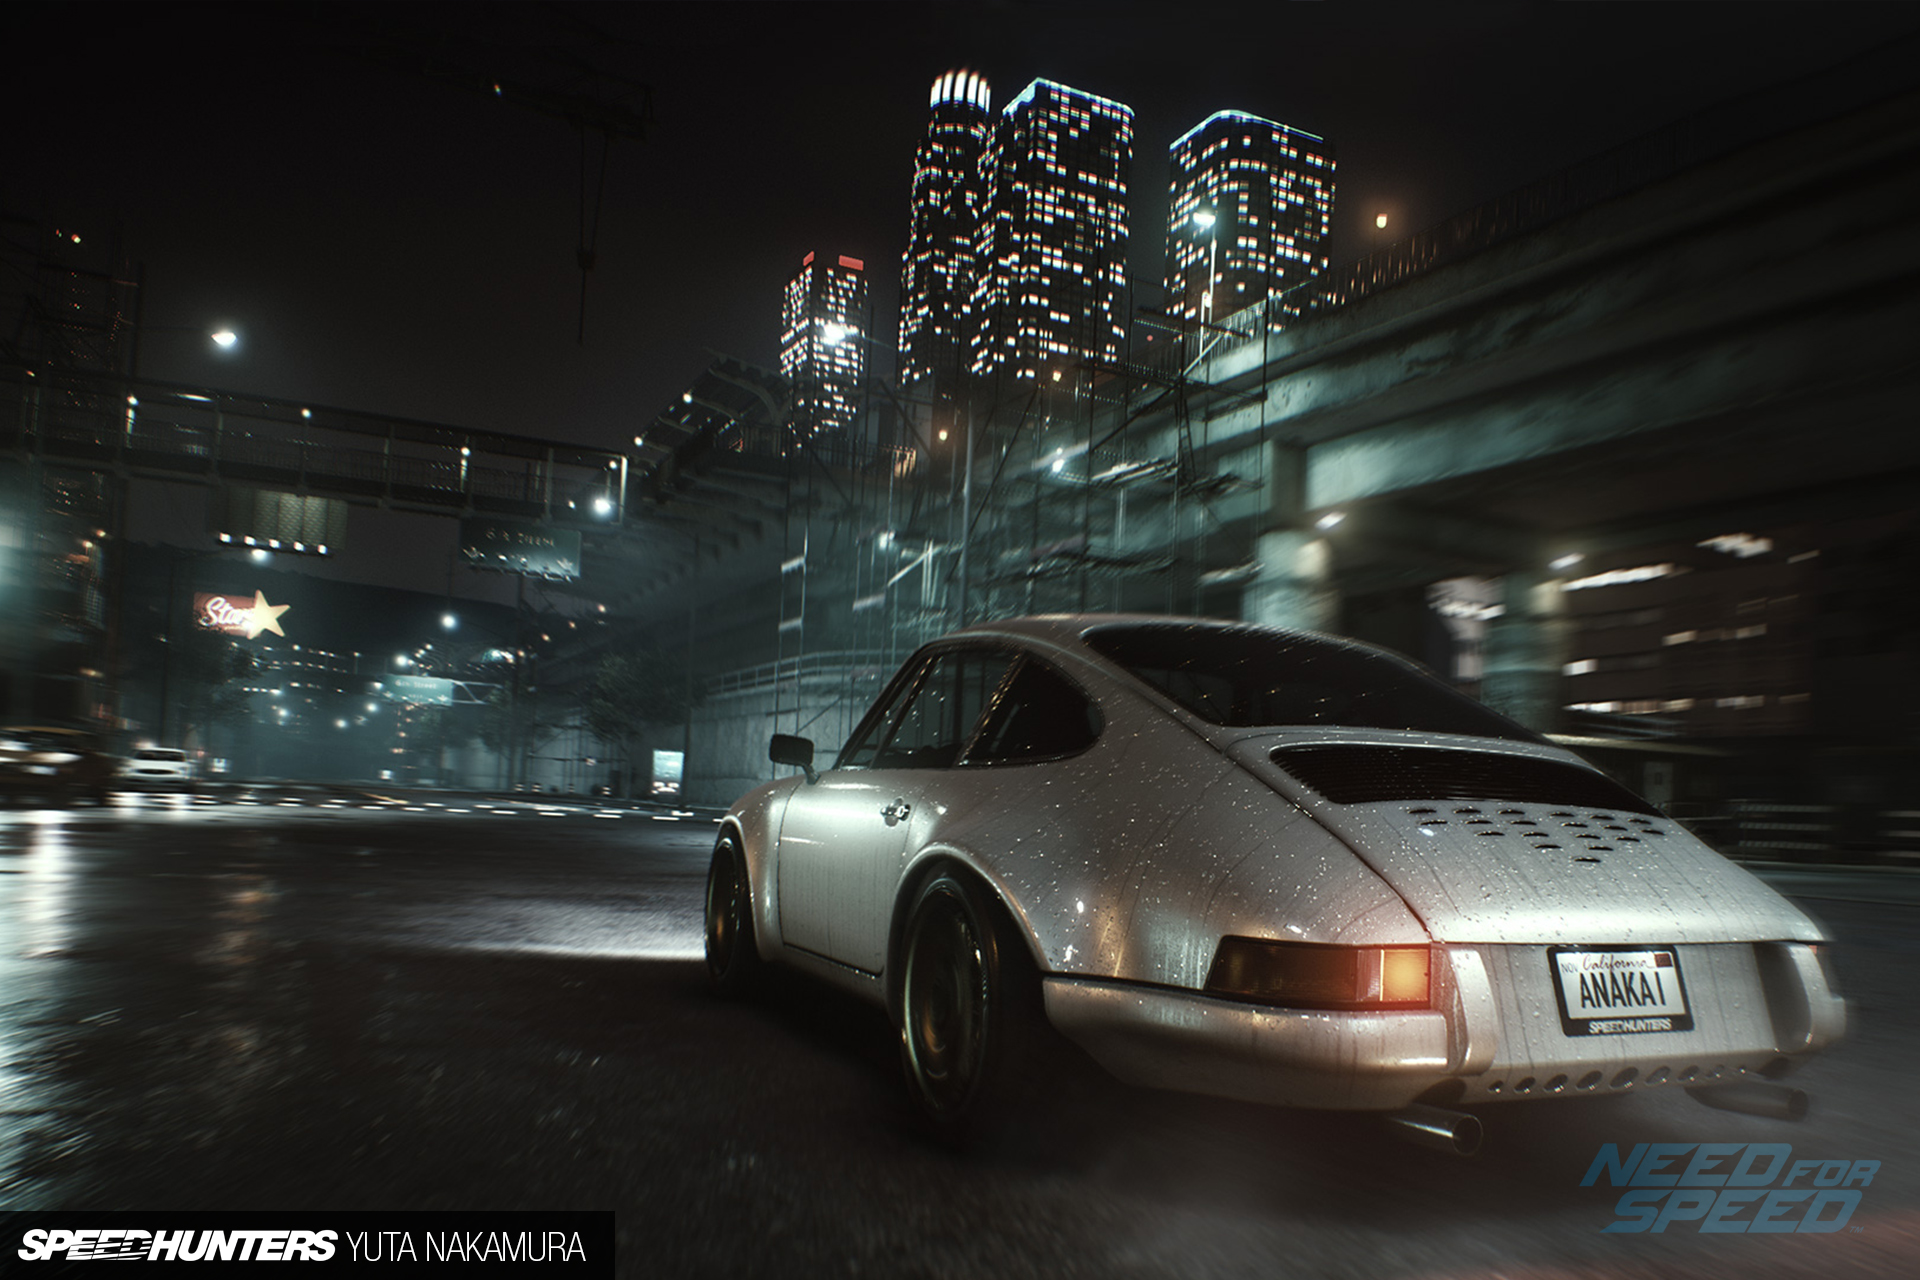 Need for Speed - 2015 - Speedhunters - INGAME SHOT